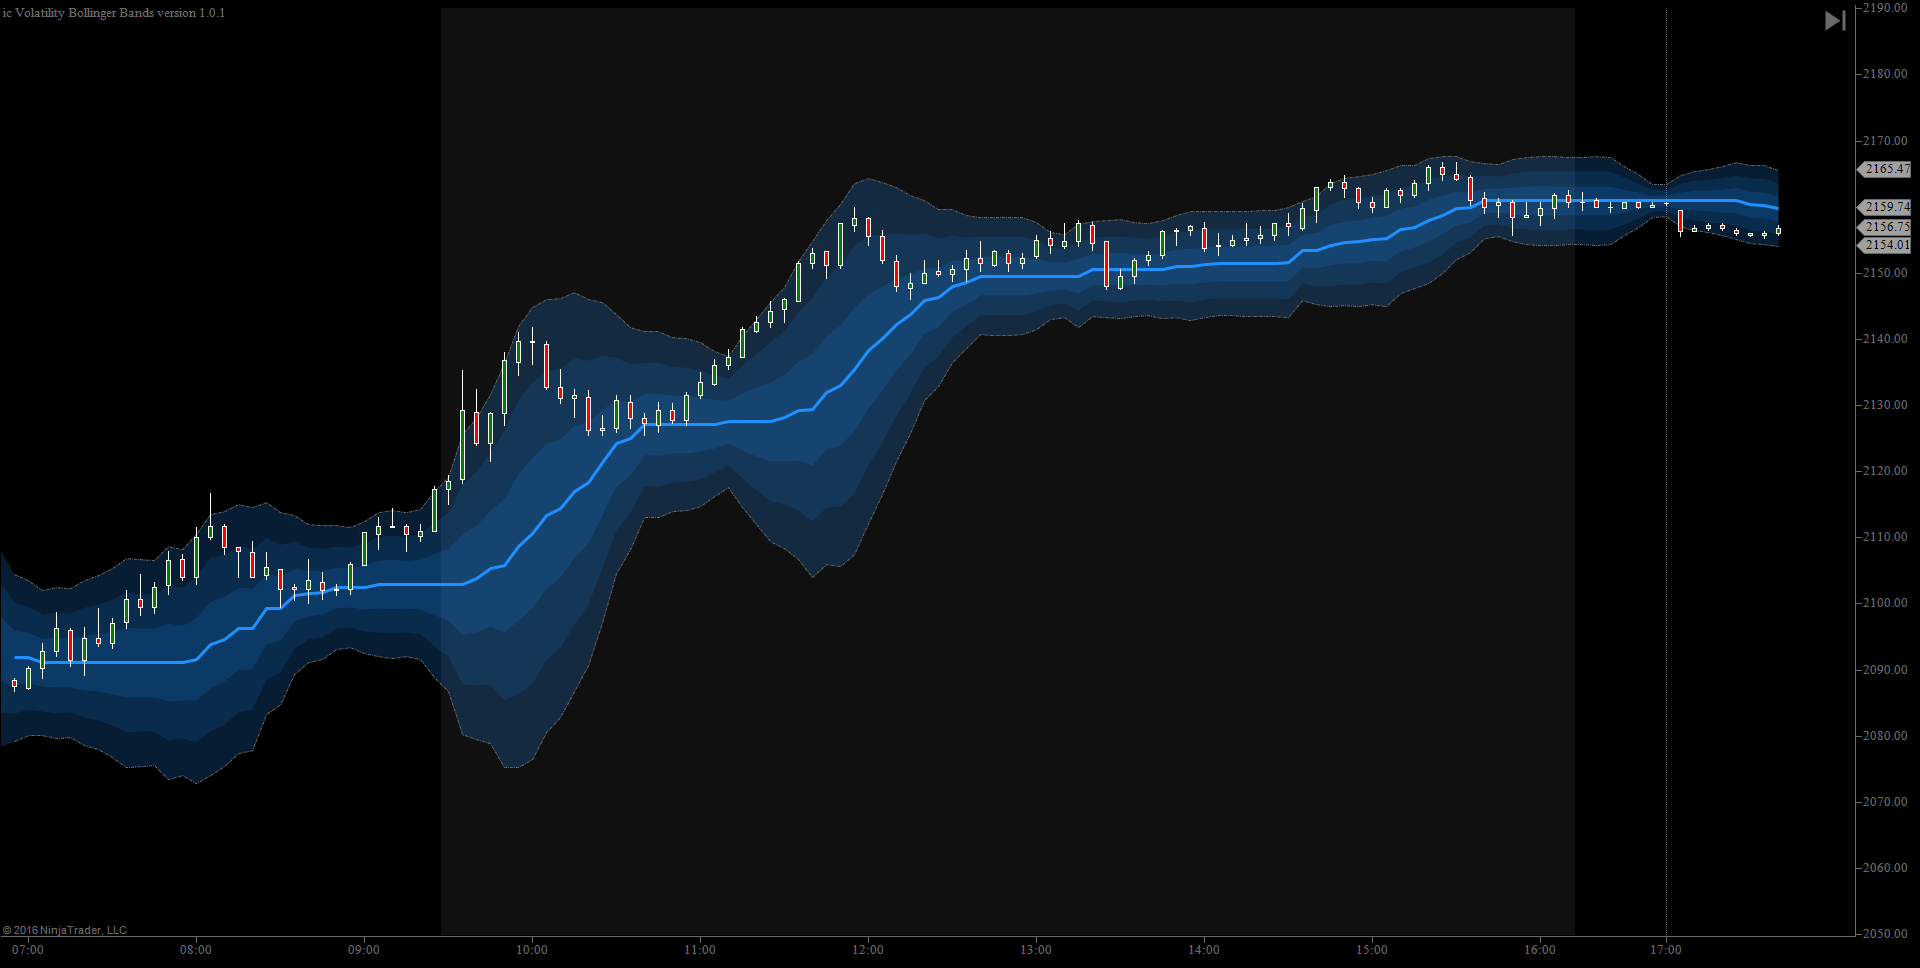 Custom Bollinger Bands Standard Deviation